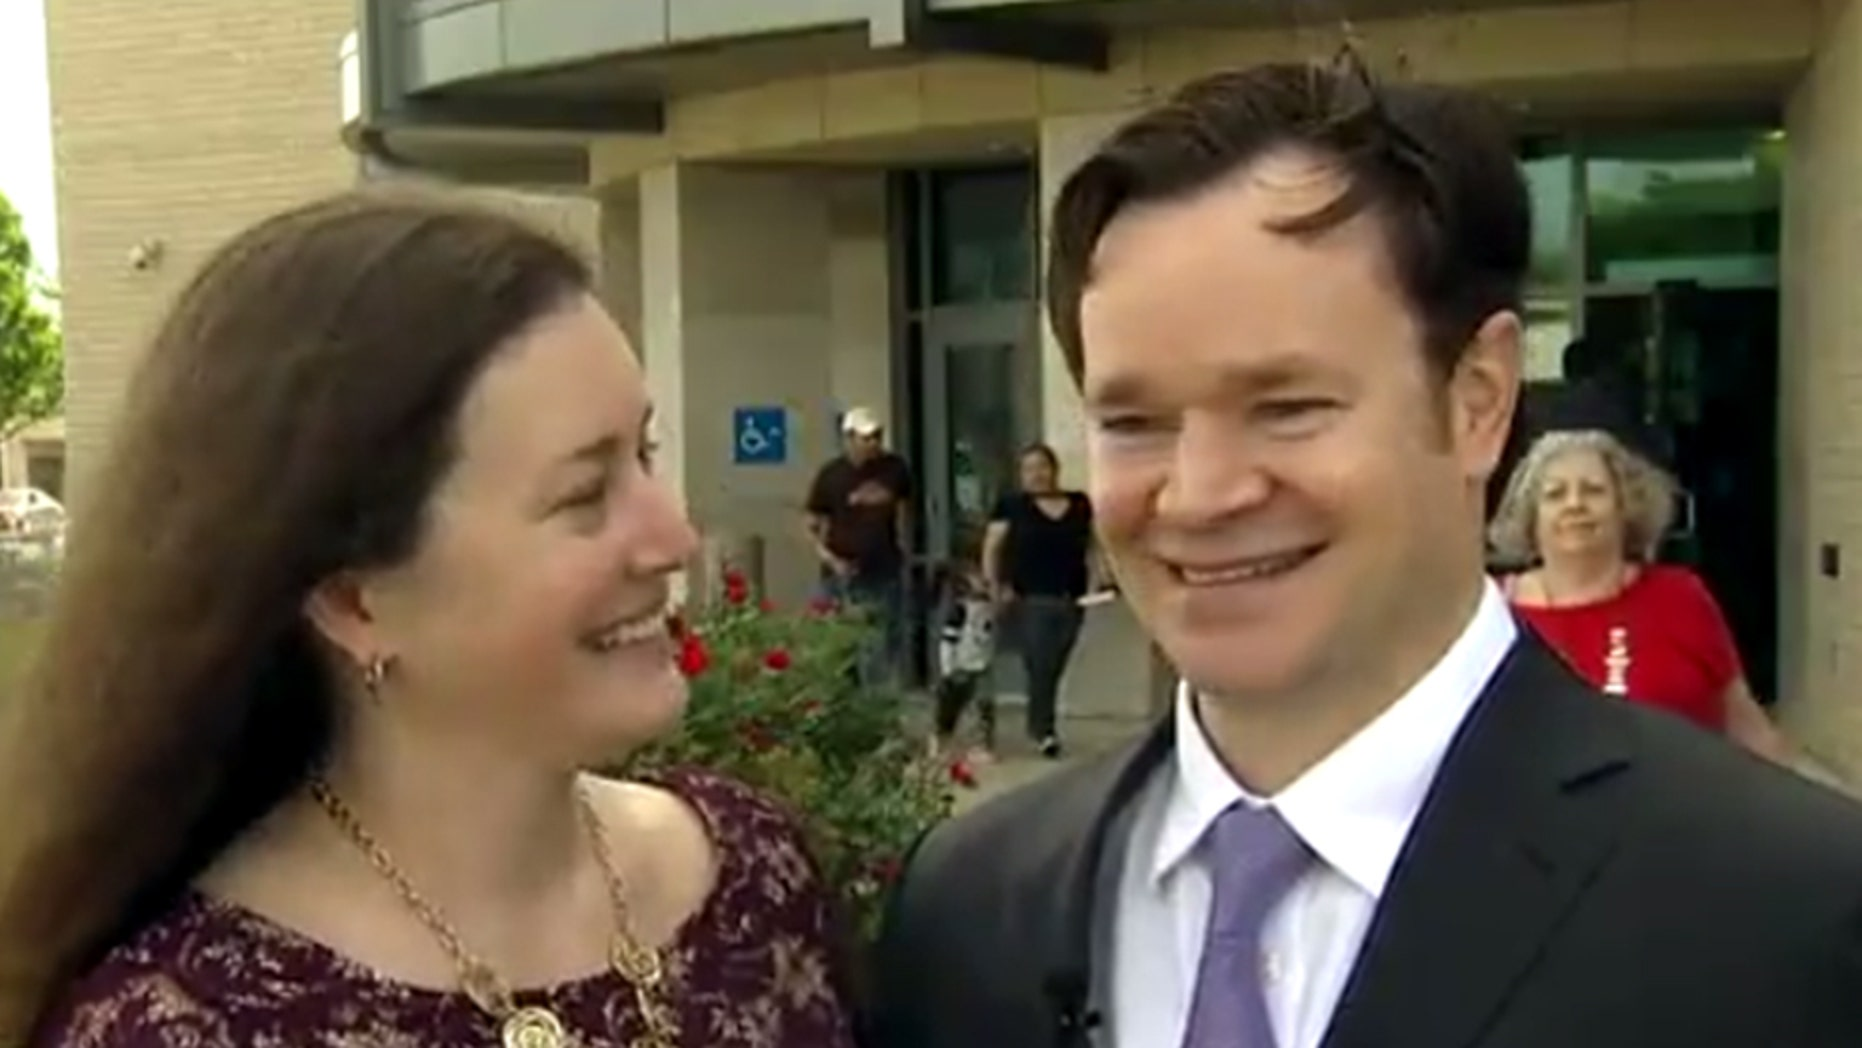 A Texas couple got married outside a sub-courthouse in Arlington after it was evacuated over a suspicious package.